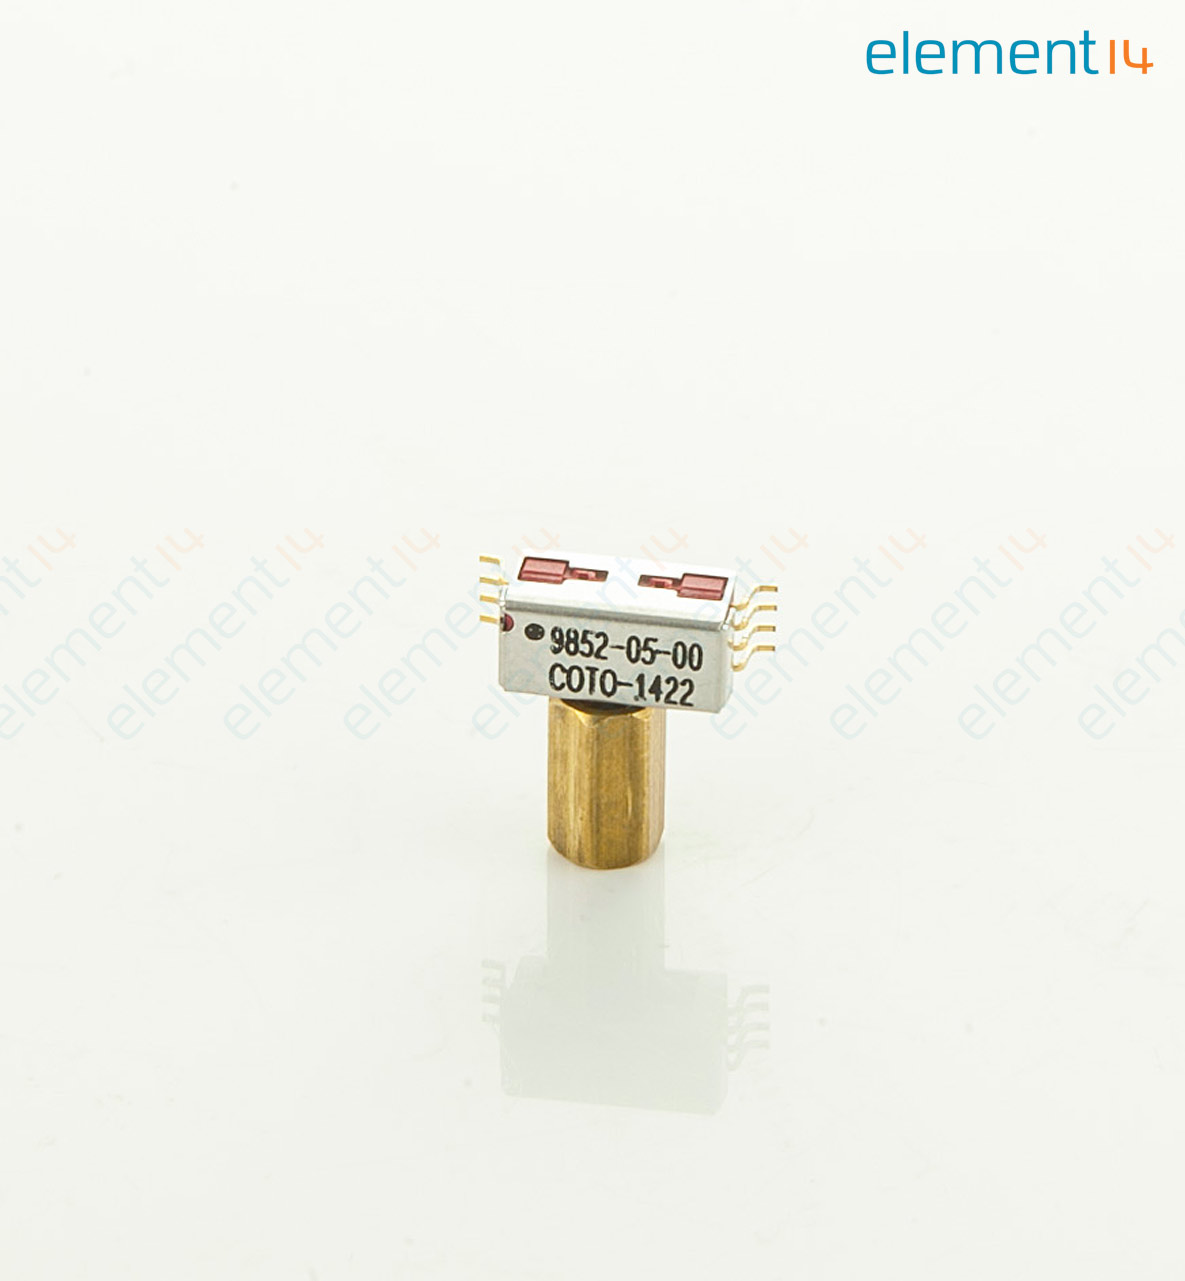 9852 05 00 Coto Technology Reed Relay Spdt 5 Vdc Datasheet Pdf Add To Compare